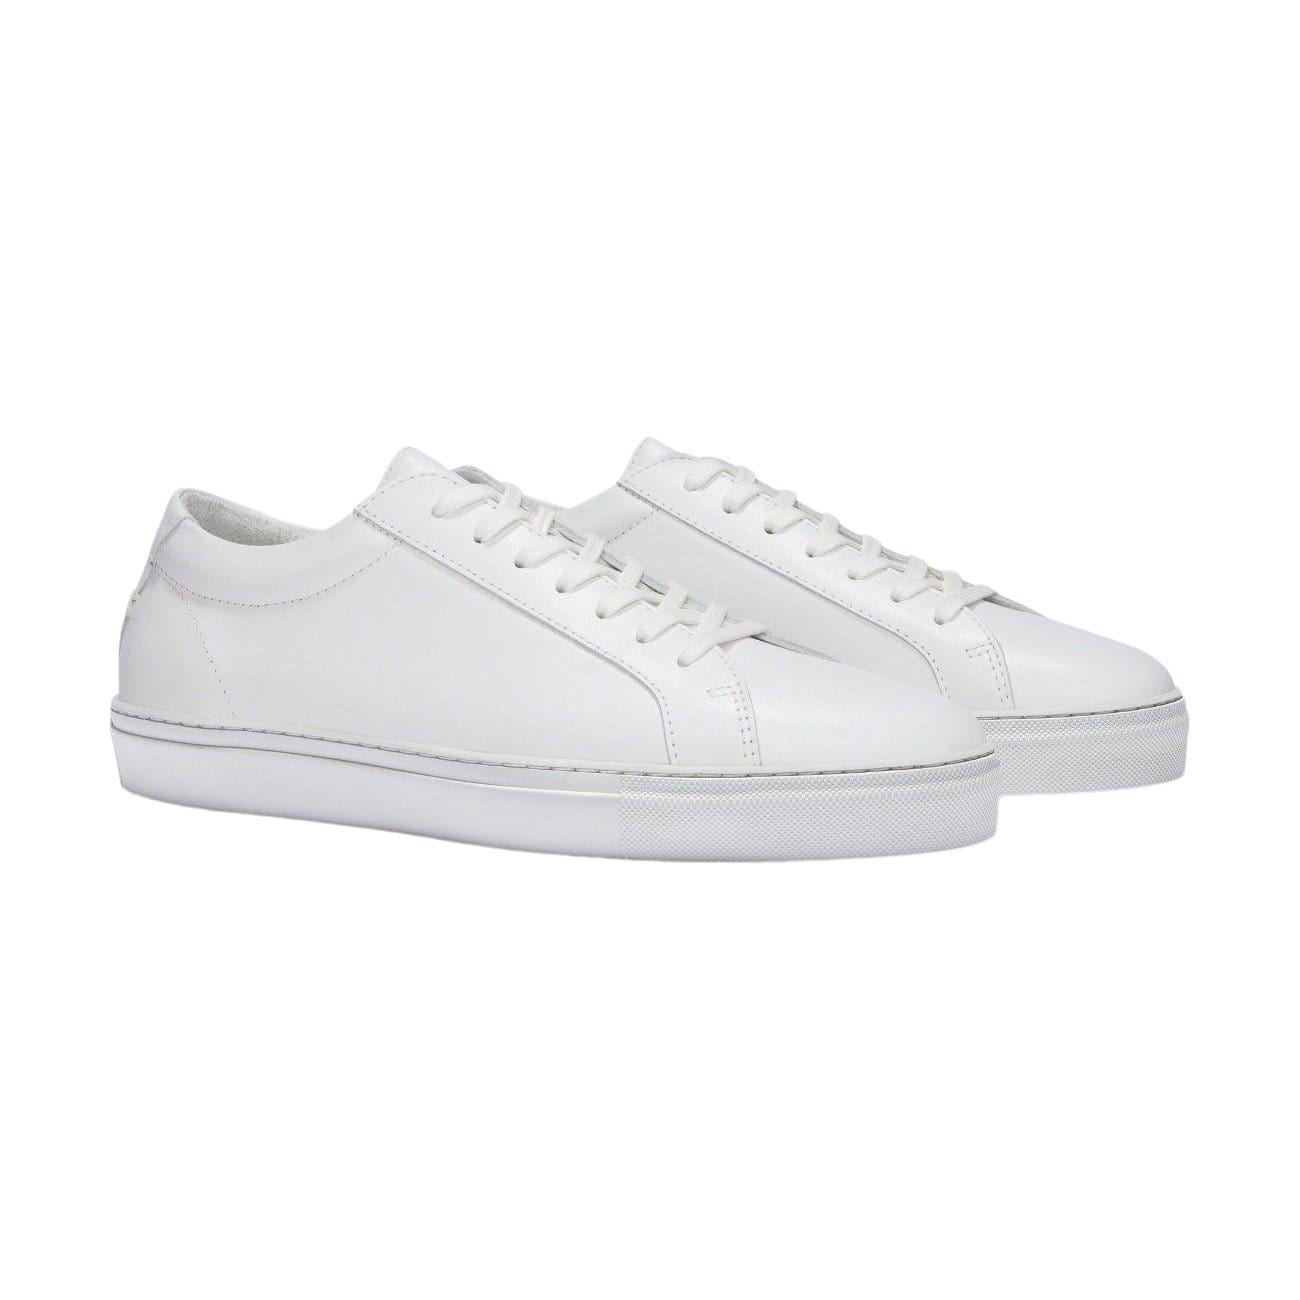 Women's SERIES 1 Triple White Leather Sneaker